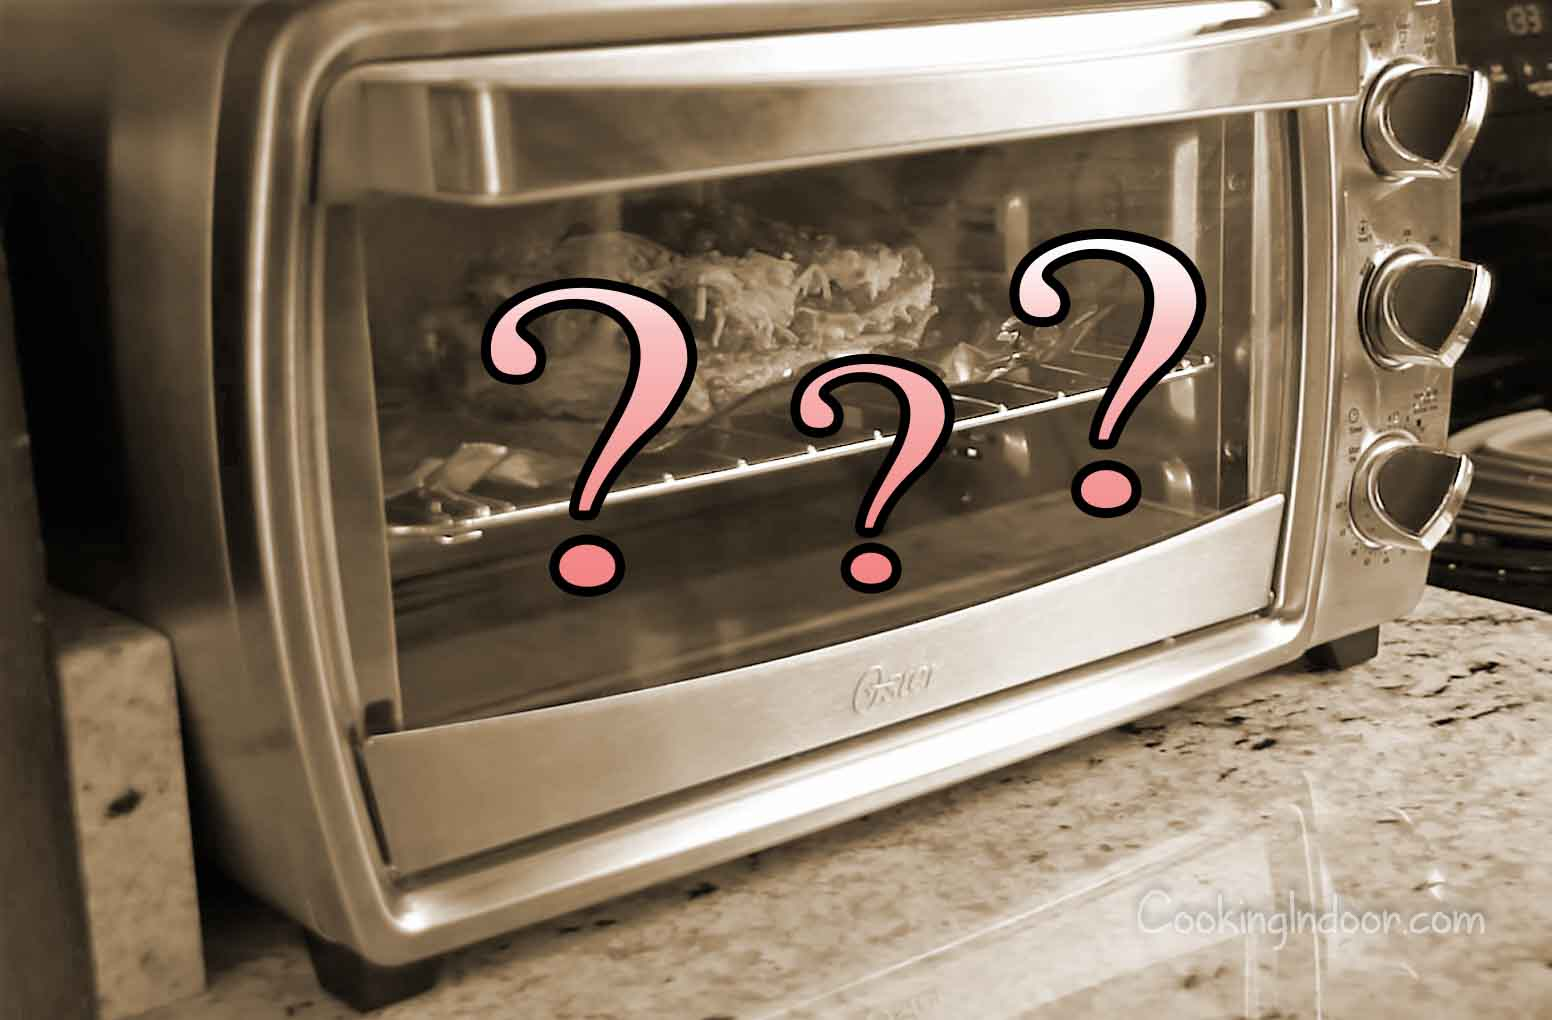 What is a convection toaster oven